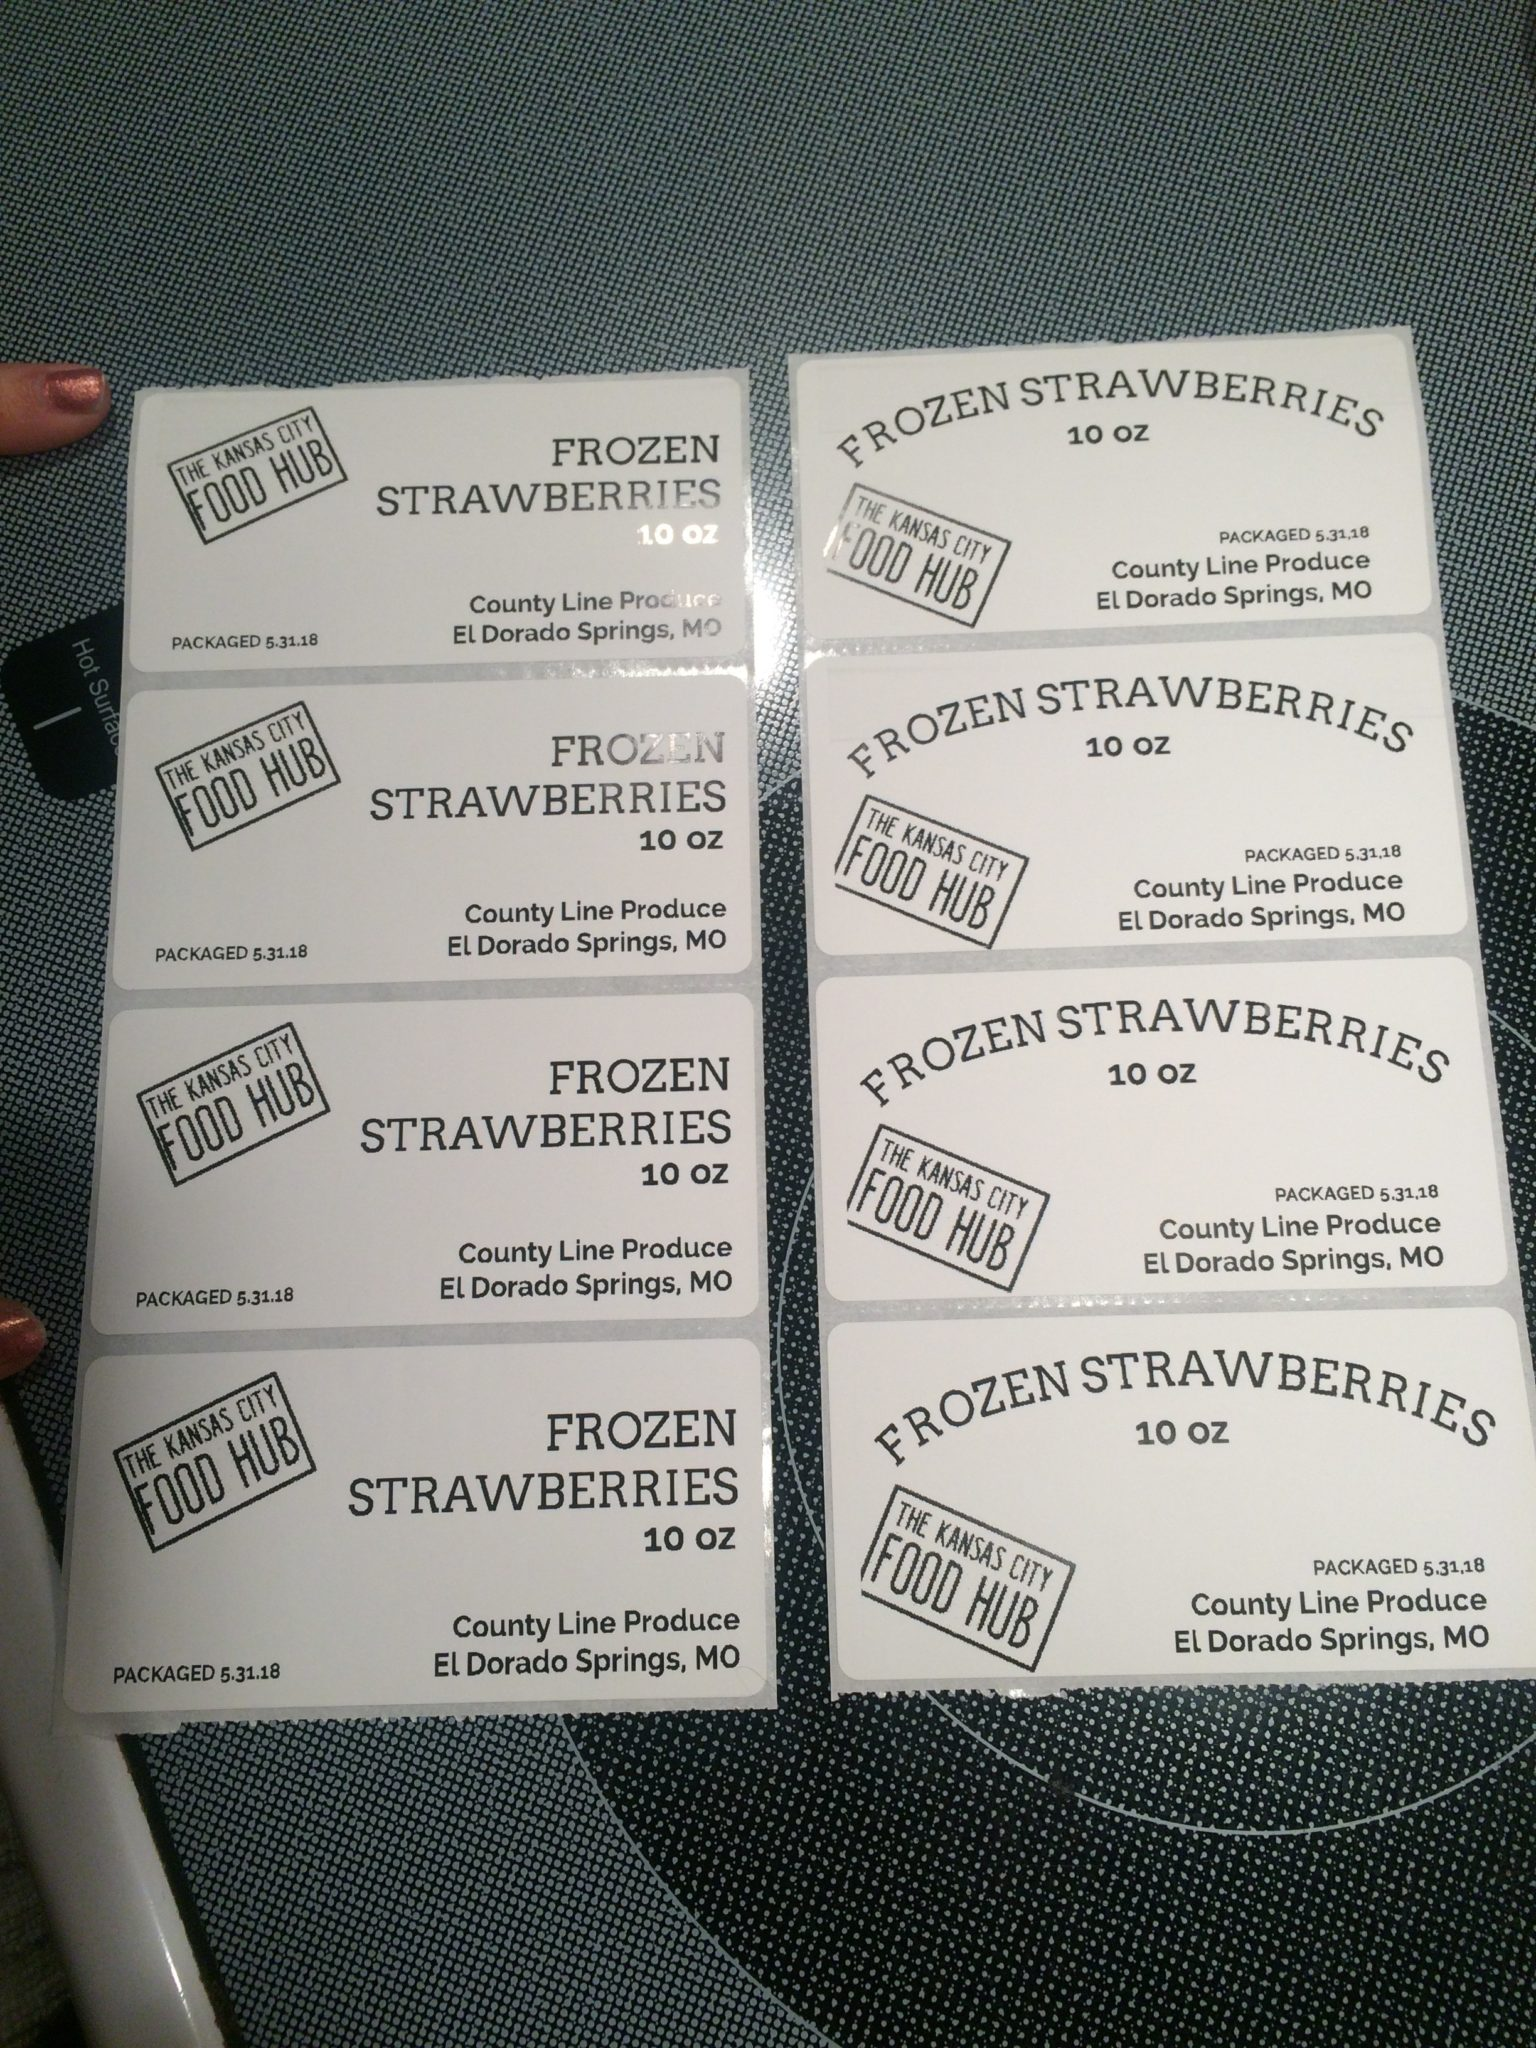 samples of frozen strawberry labels